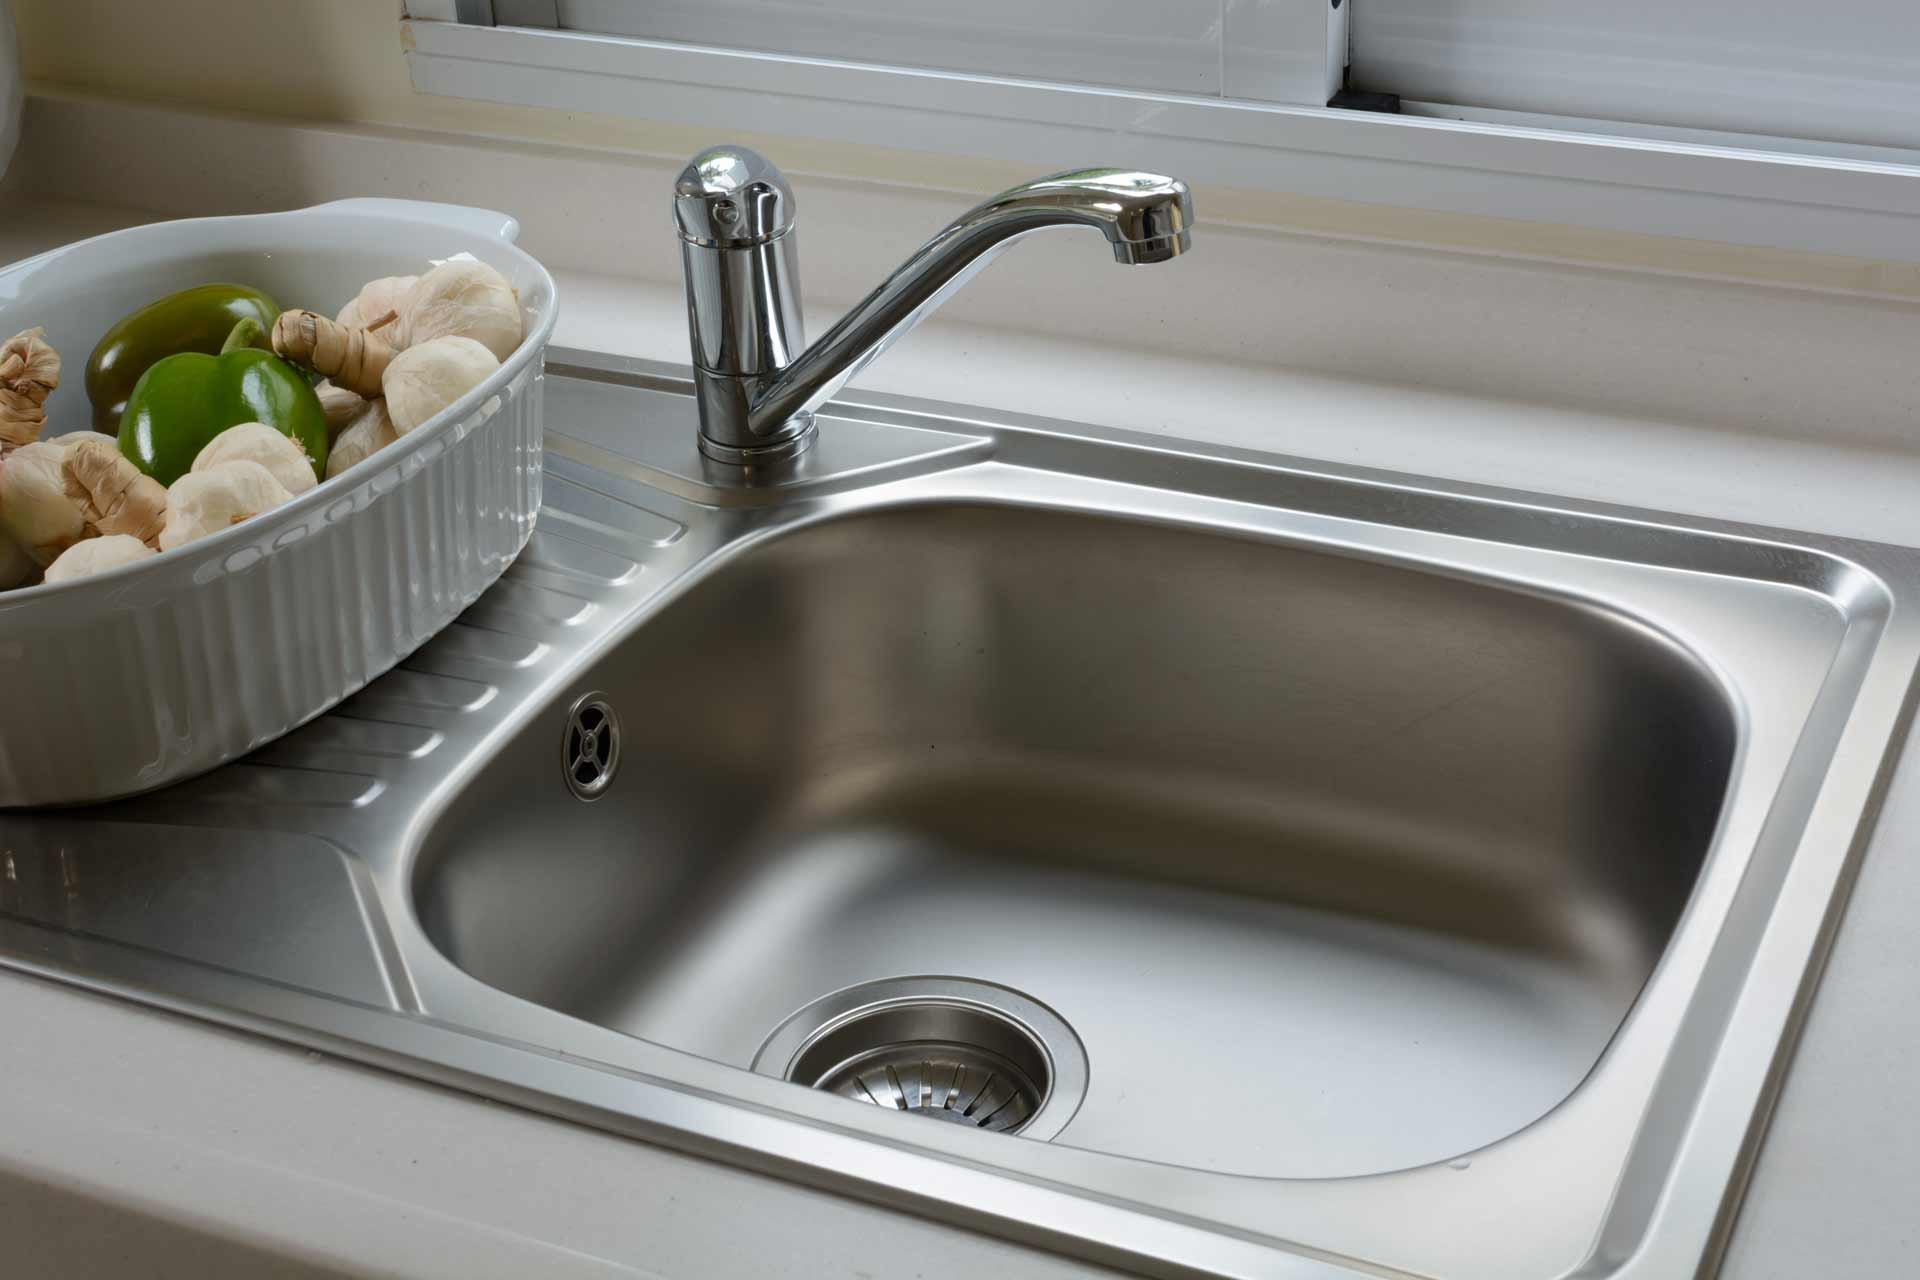 charming How To Clean A Smelly Kitchen Sink #6: Fix A Smelly Kitchen Drain Zitzat